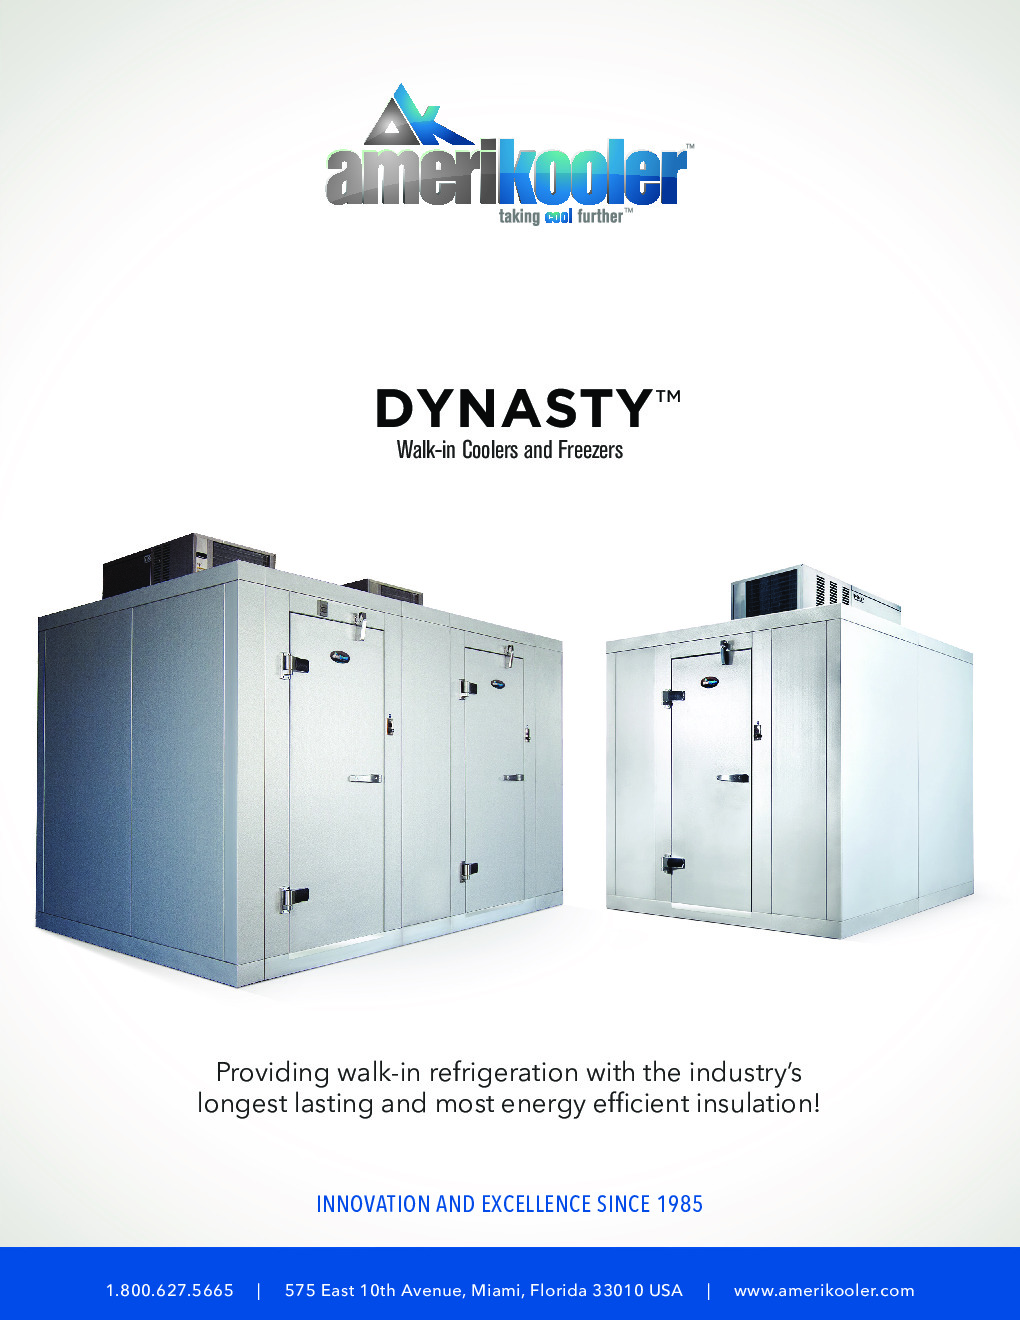 AmeriKooler DW081577N-7/8-SC 8' X 15' Walk-In Cooler, 8' L Cooler without Floor and 7' L Freezer, Self Contained